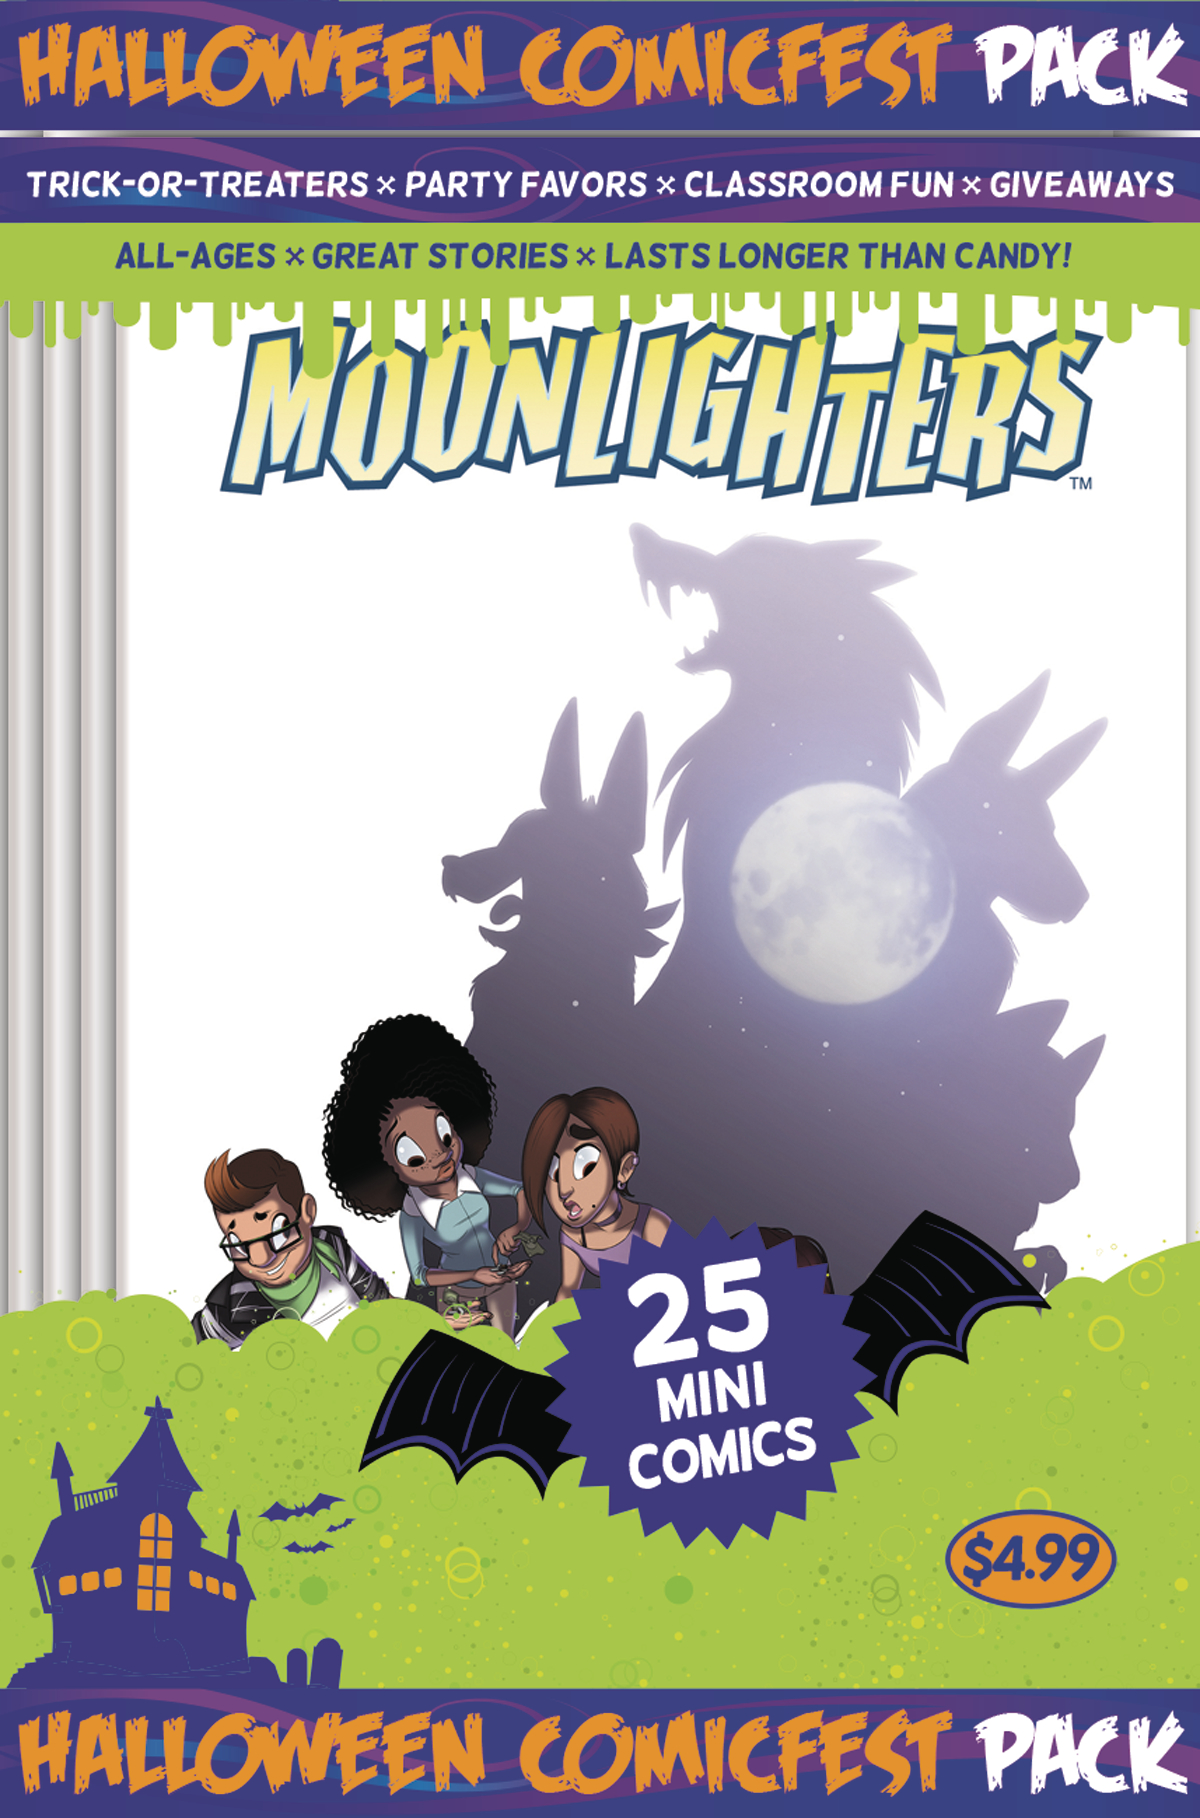 HCF 2017 MOONLIGHTERS MINI COMIC POLYPACK